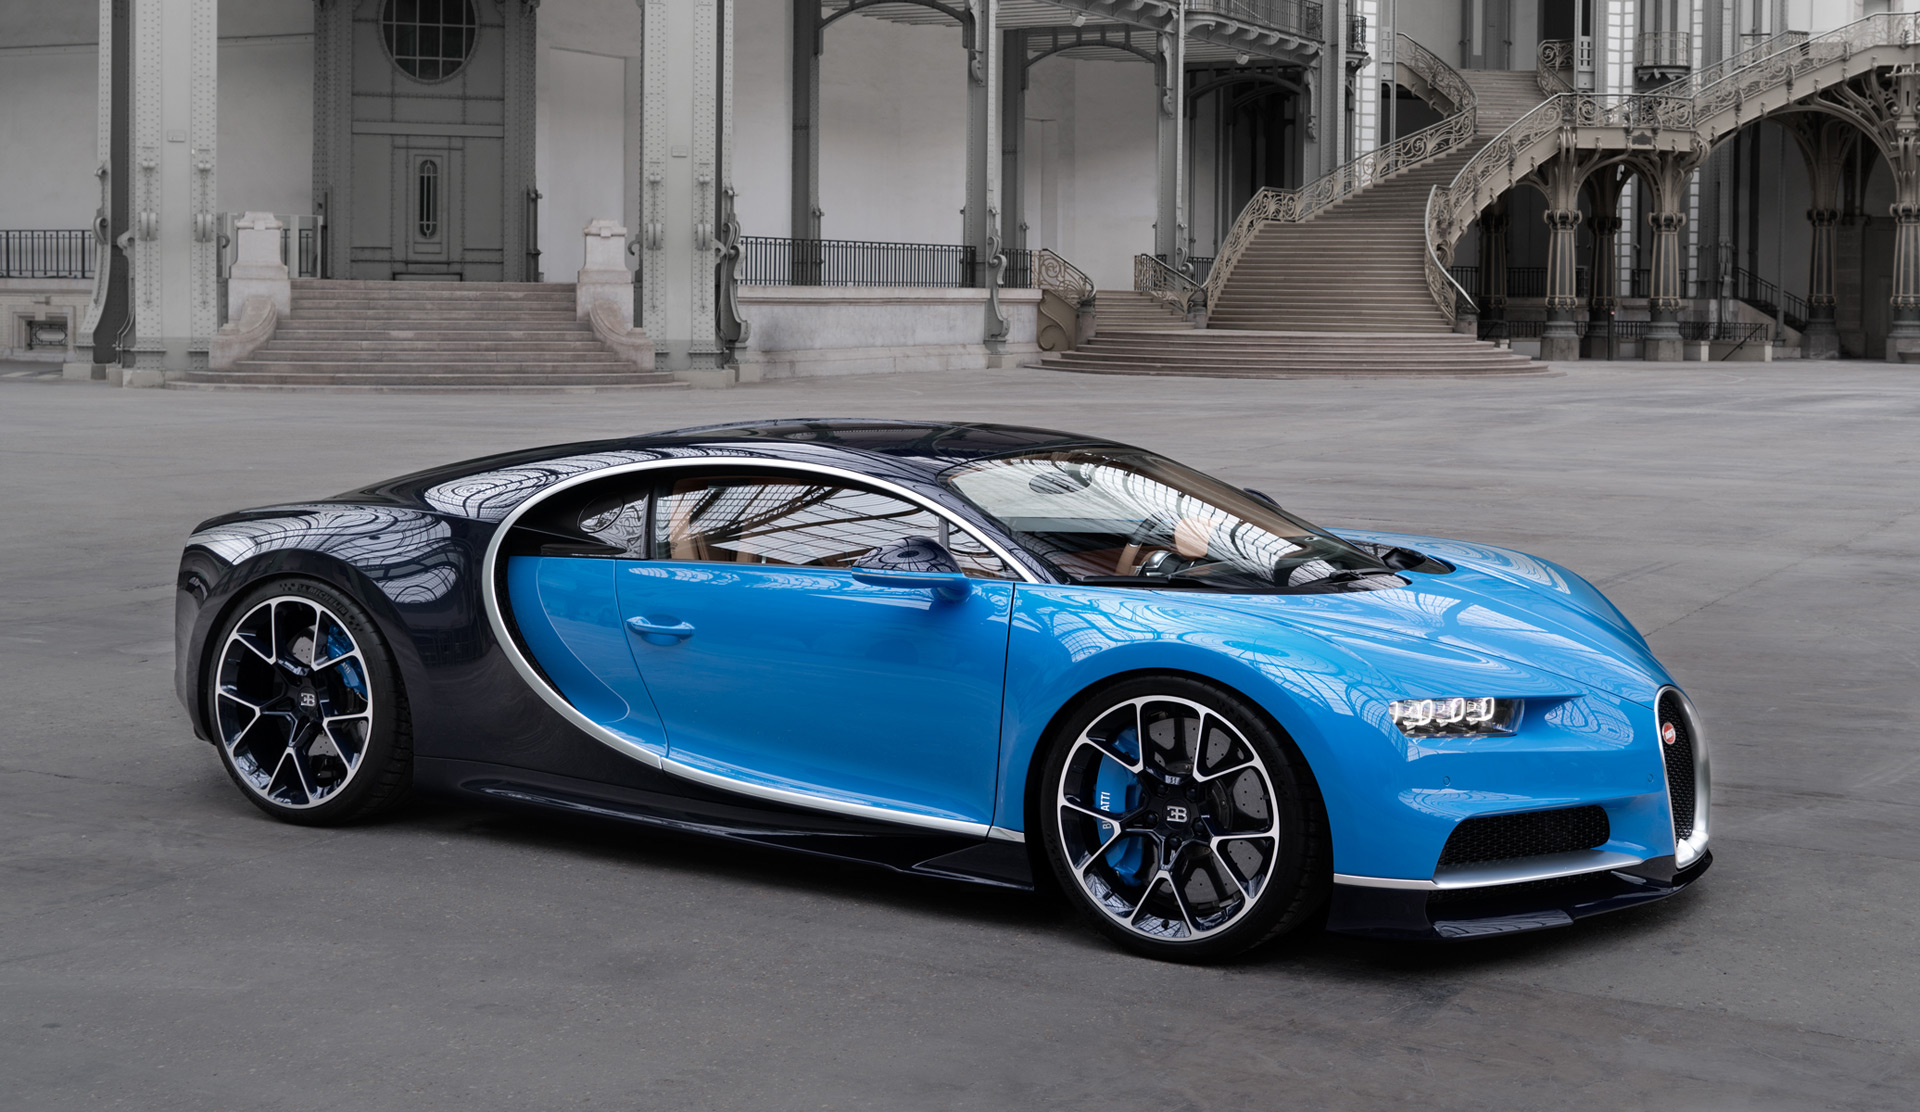 The Best New Cars By Bugatti Aston Martin And Ferrari In 2018: 2017 Bugatti Chiron Preview